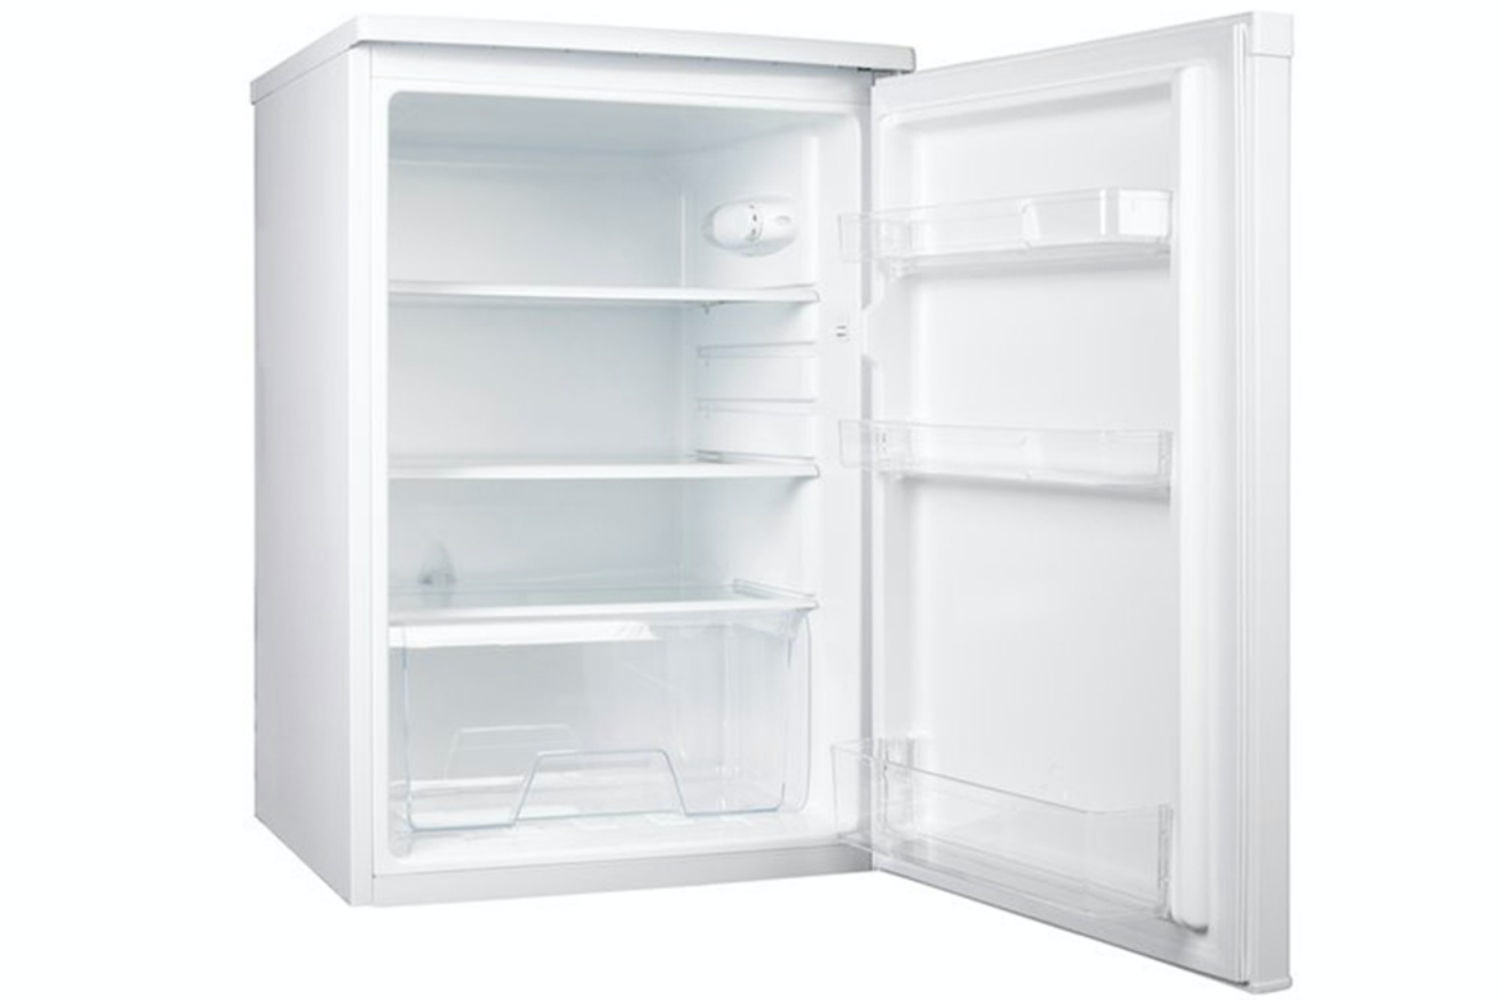 belling-larder-fridge